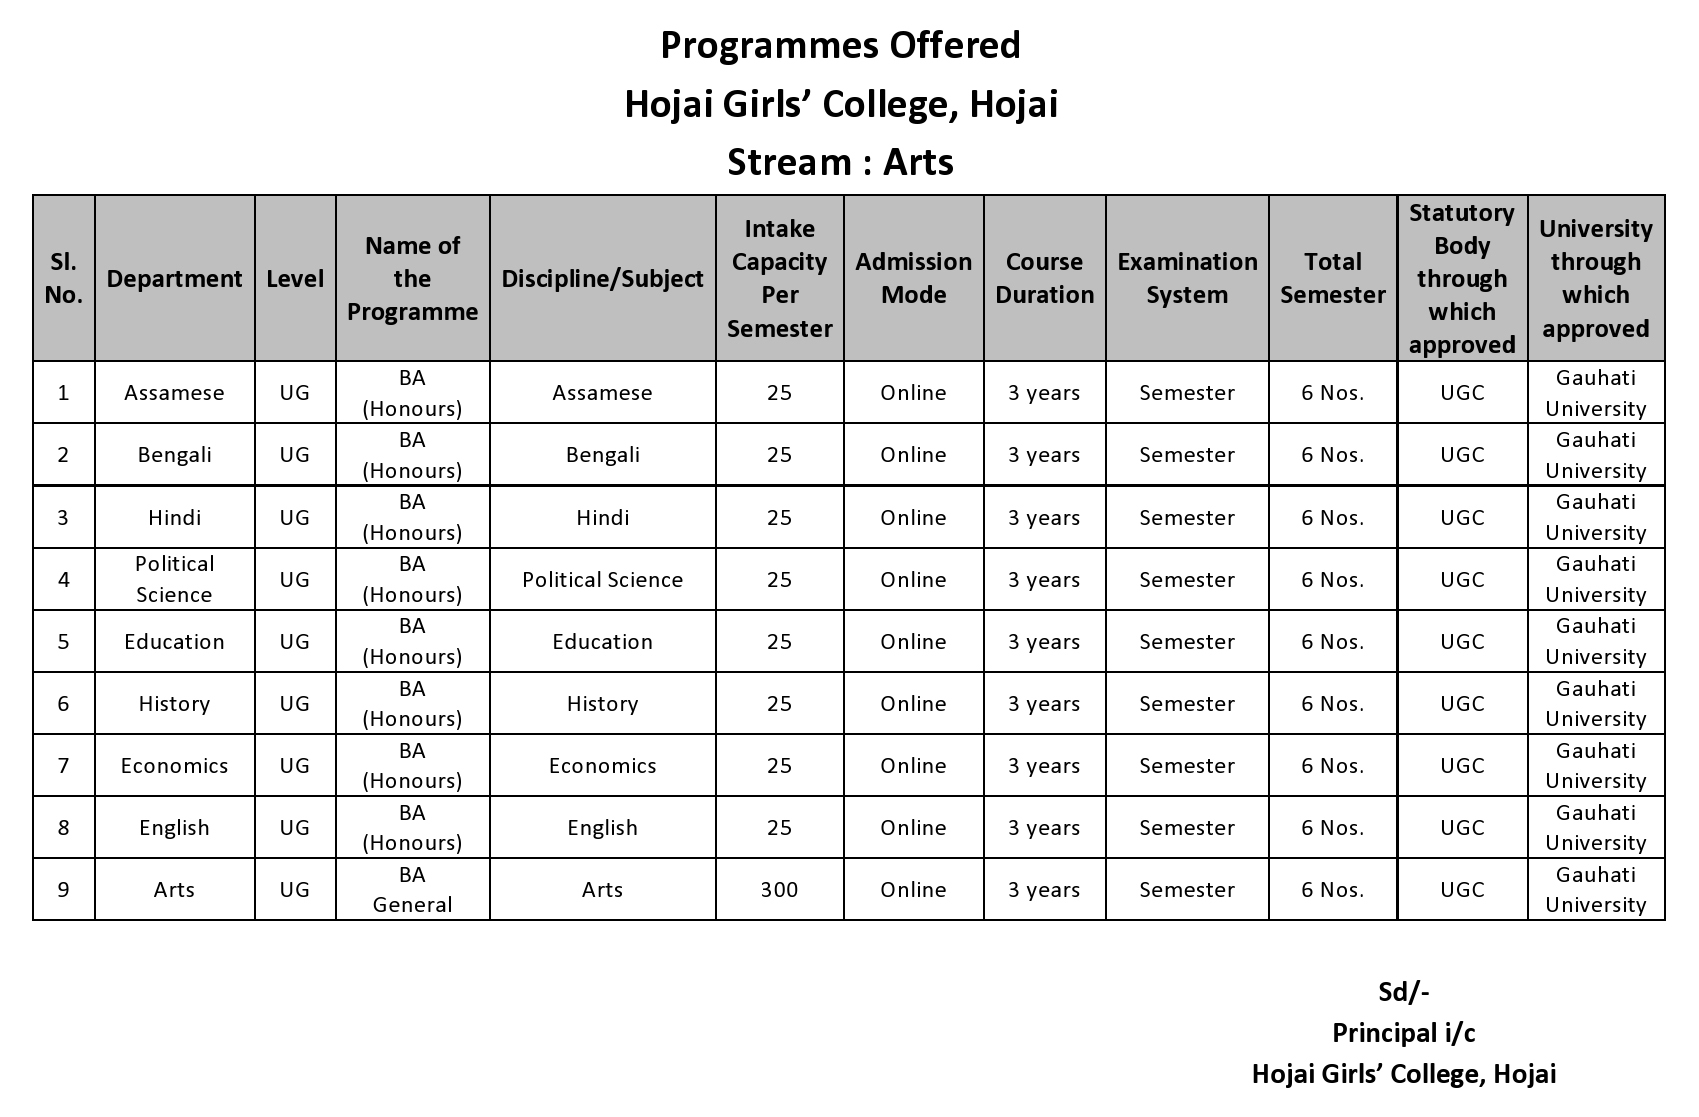 Programmes_Offered-page0001